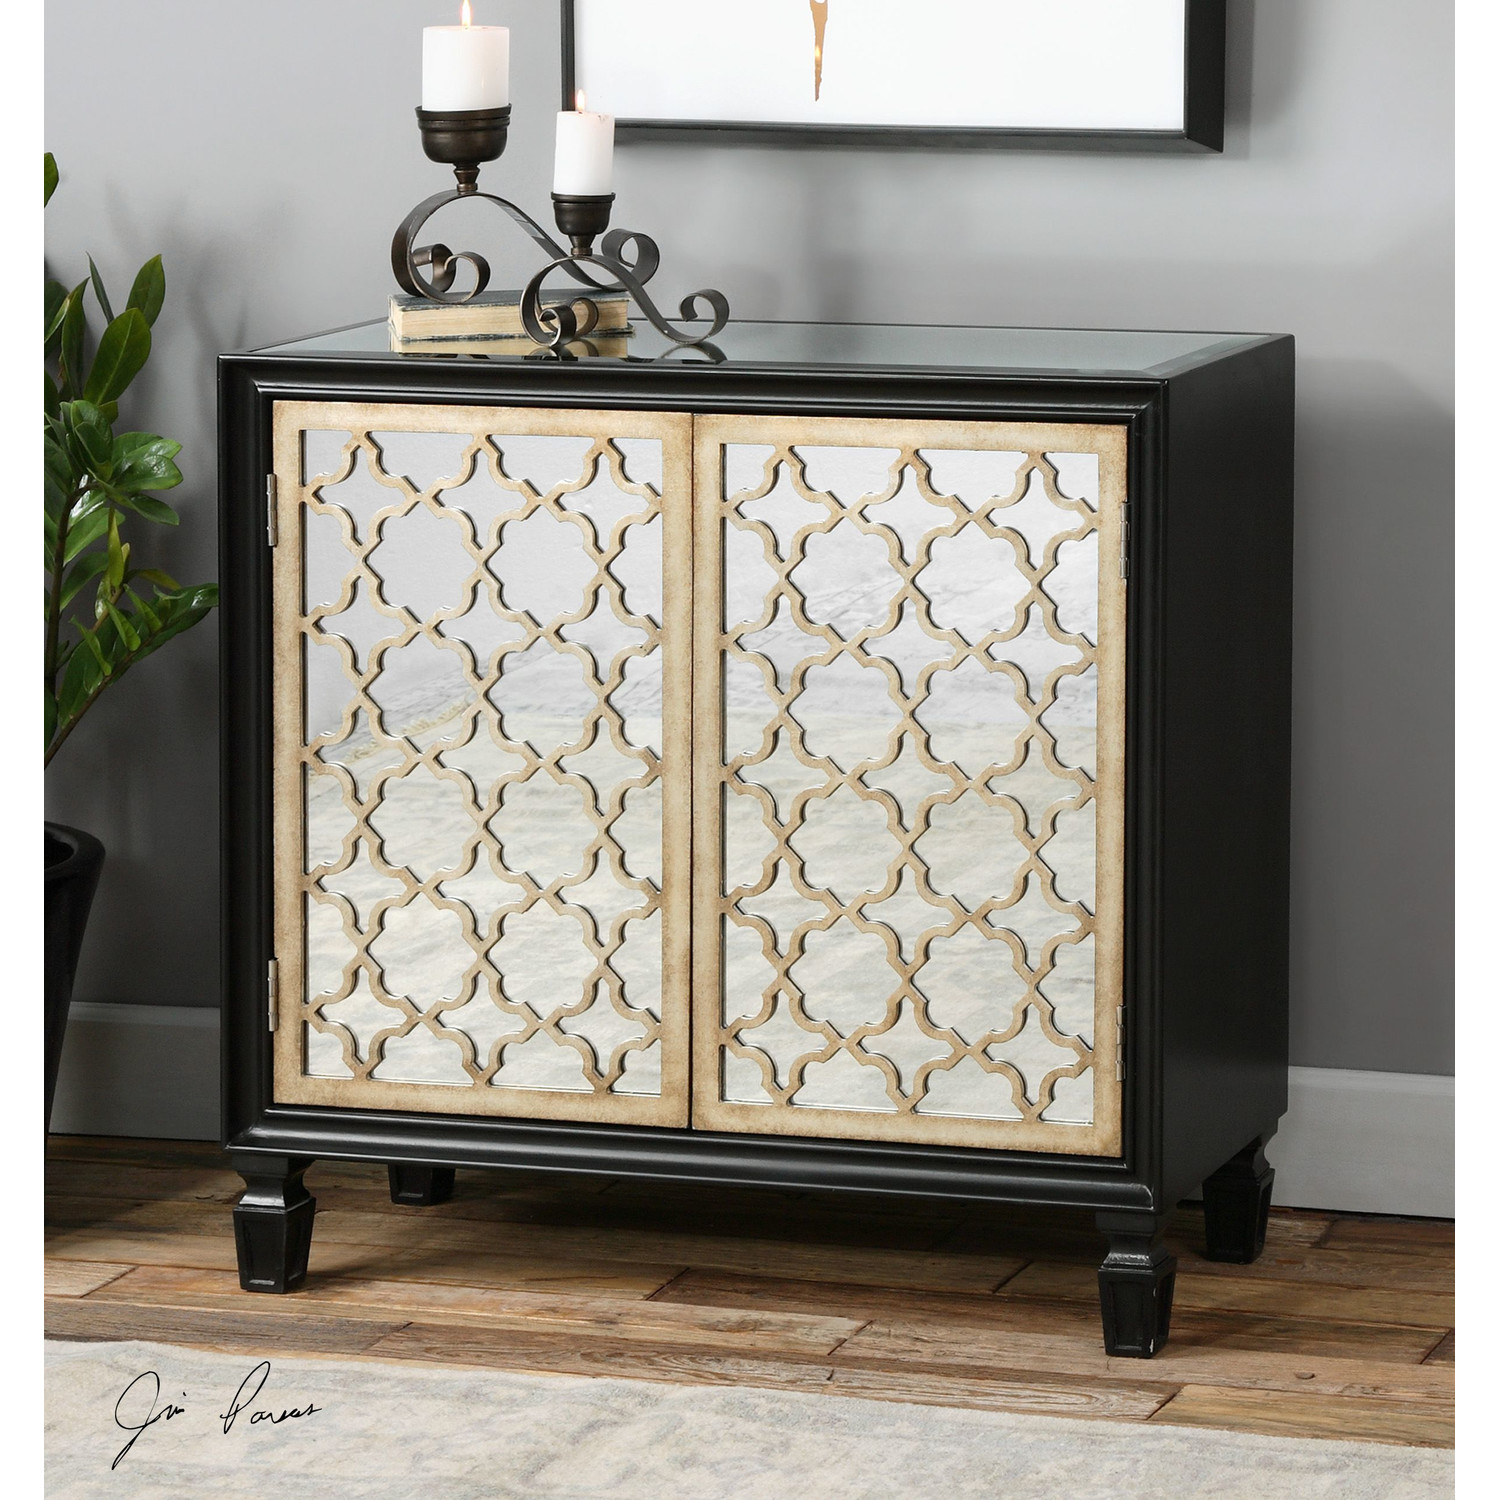 Mirrored Cabinet: Mirrored Console Cabinet Review